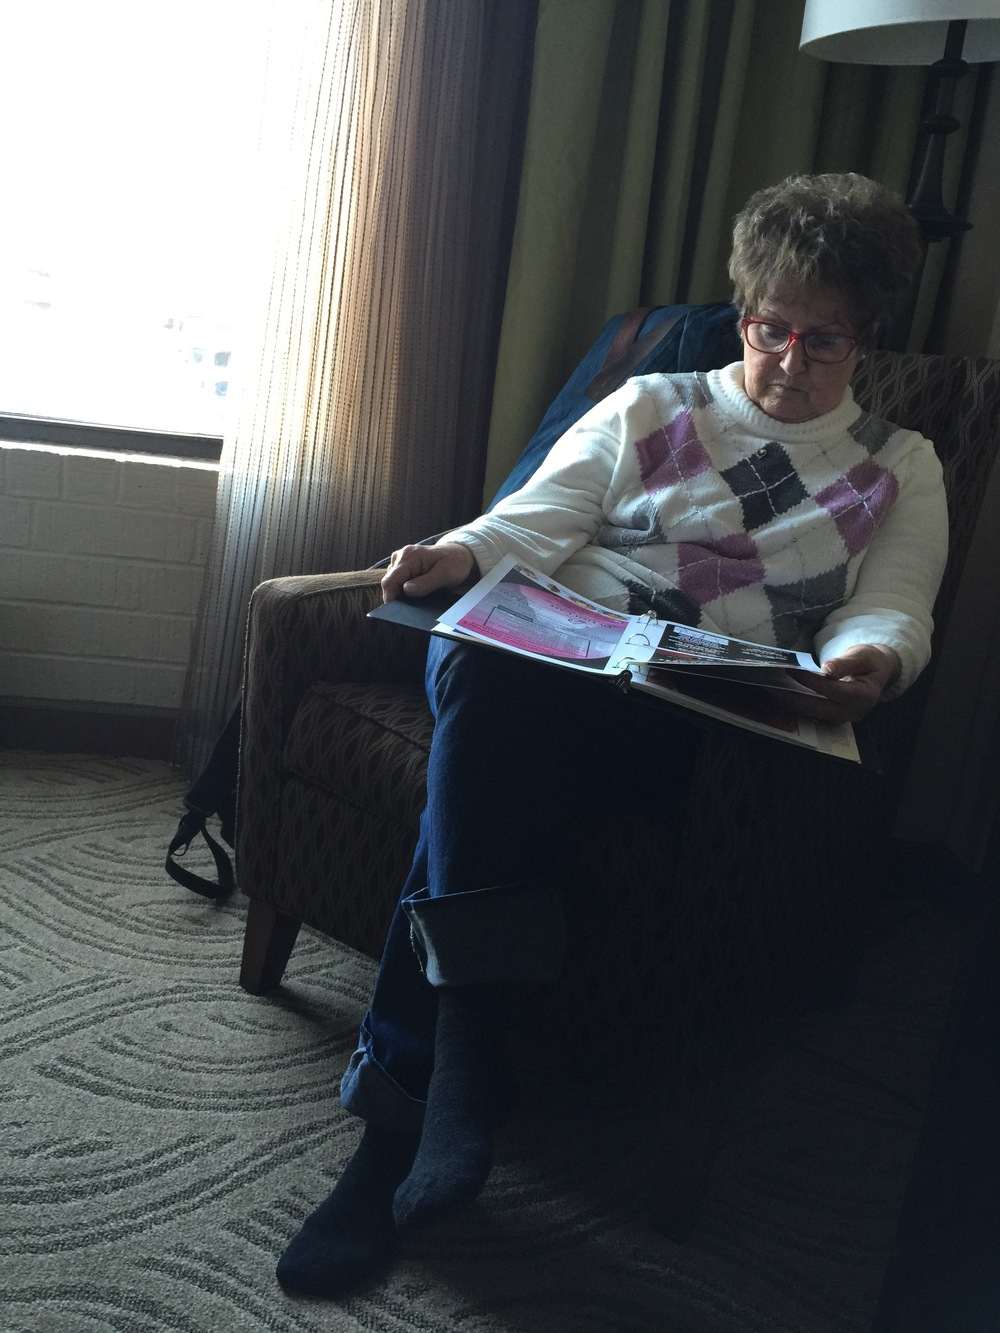 My mother would sit and quietly read while I was getting ready for shows. The calm before the storm.